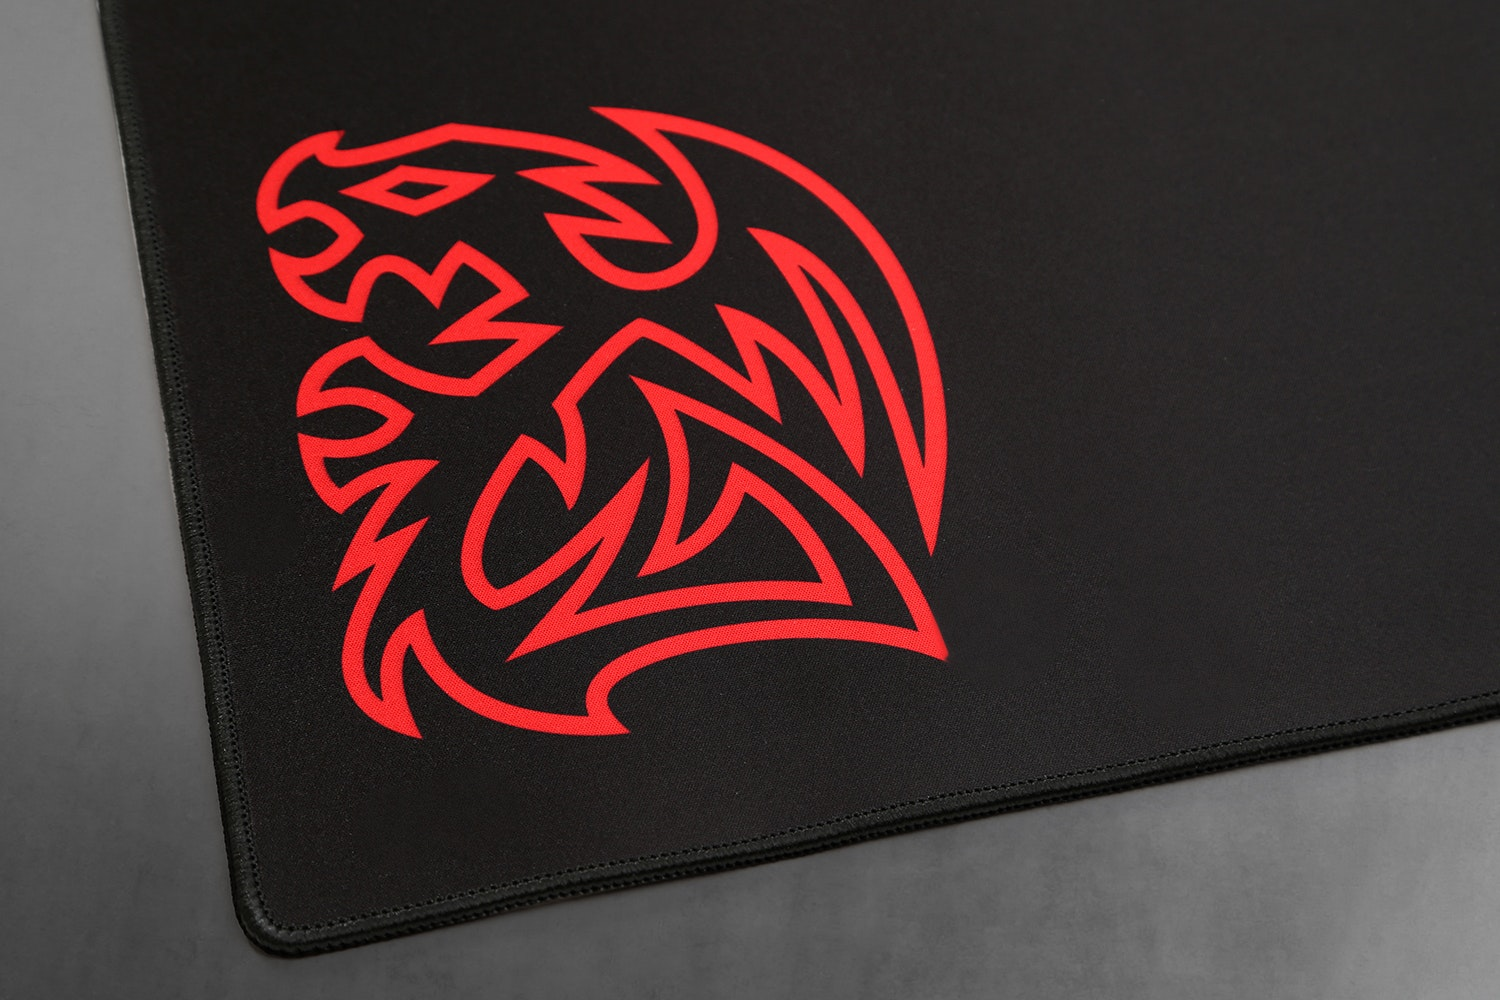 TT eSports Dasher Extended Desk Mat